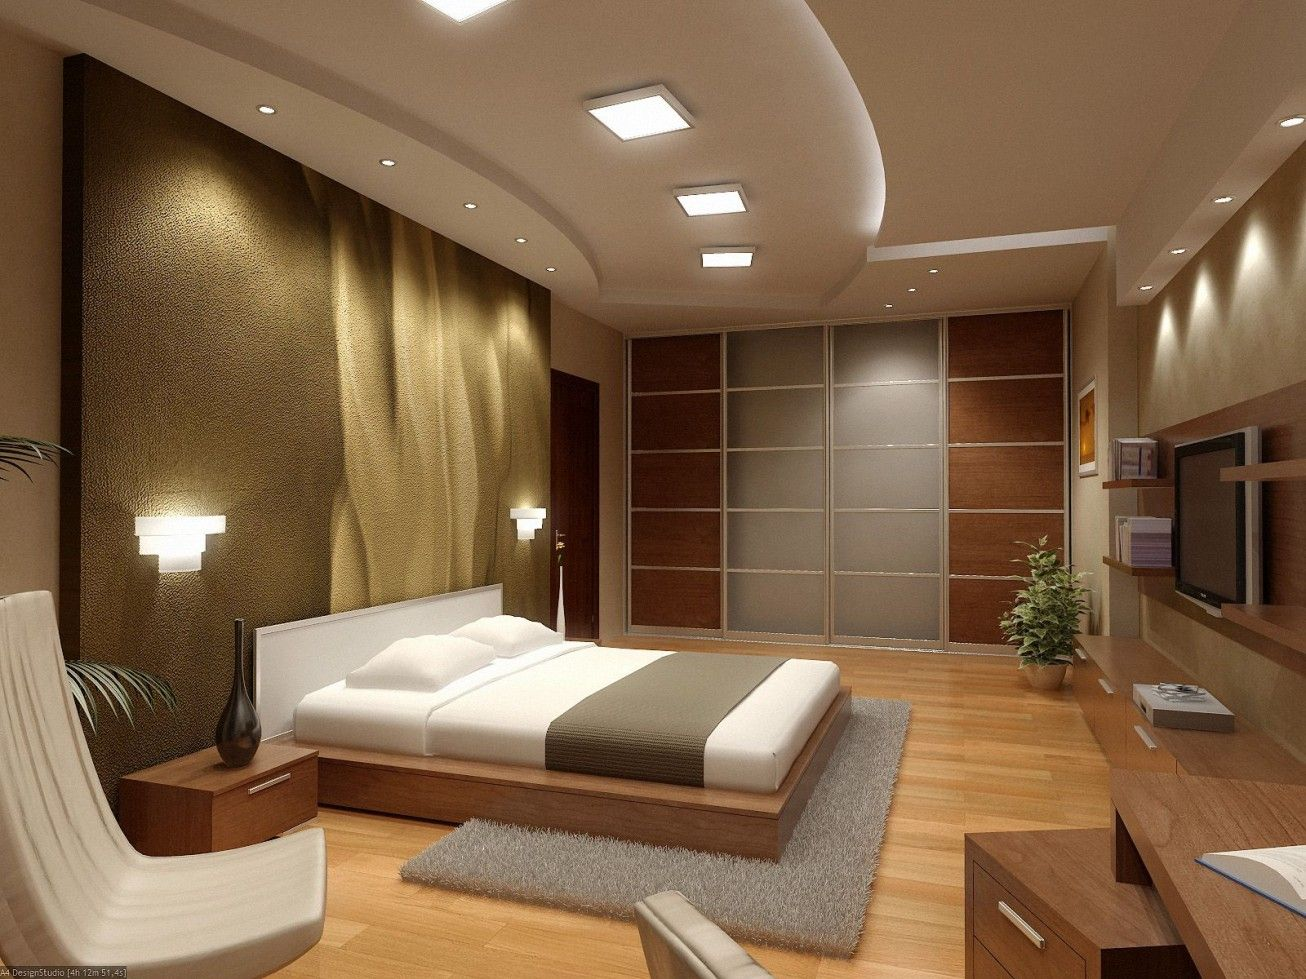 Build amazing interior design ideas for men with interior design ideas lounge astonishing interior design ideas for men with modern king size bed night